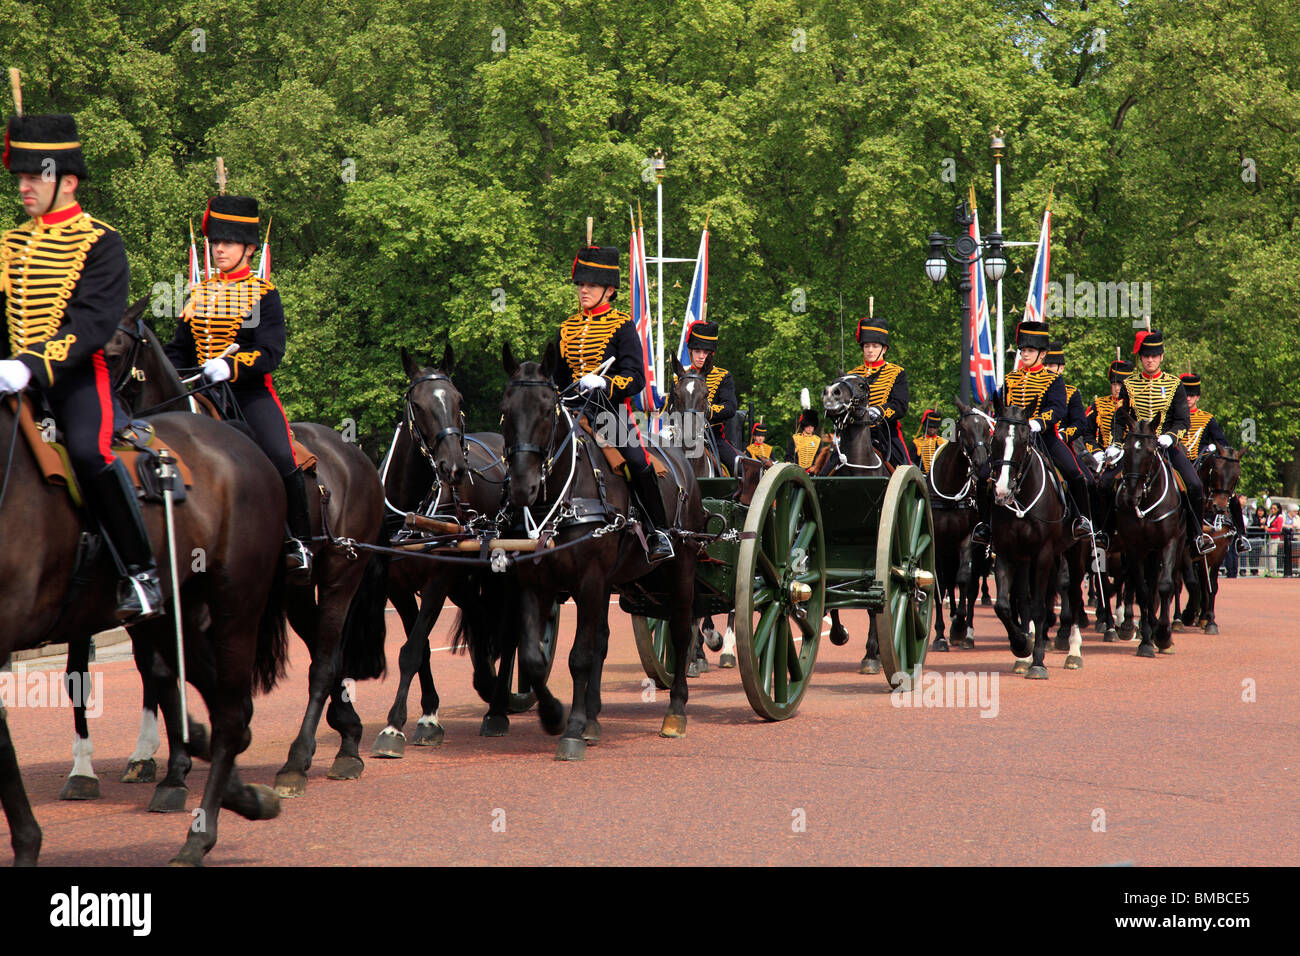 Procession of Gun Carriages in The Mall London - Stock Image